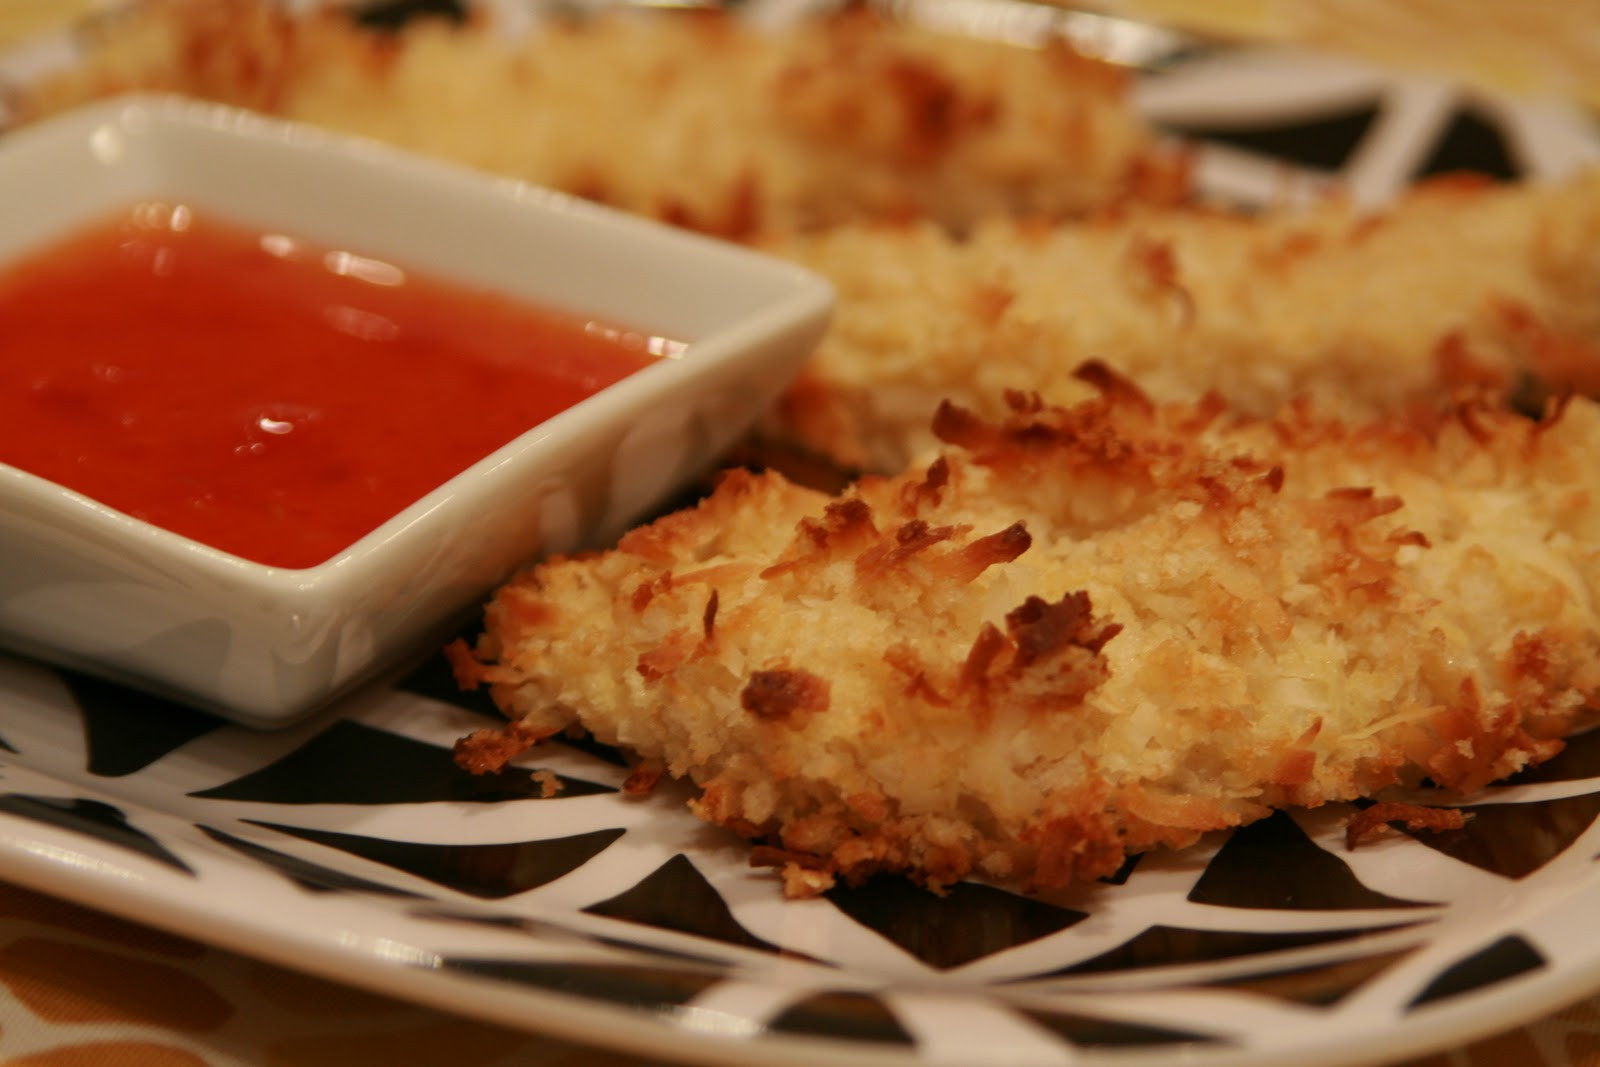 Baked Coconut Chicken  Cook Bake & Decorate Baked Coconut Chicken Tenders w a